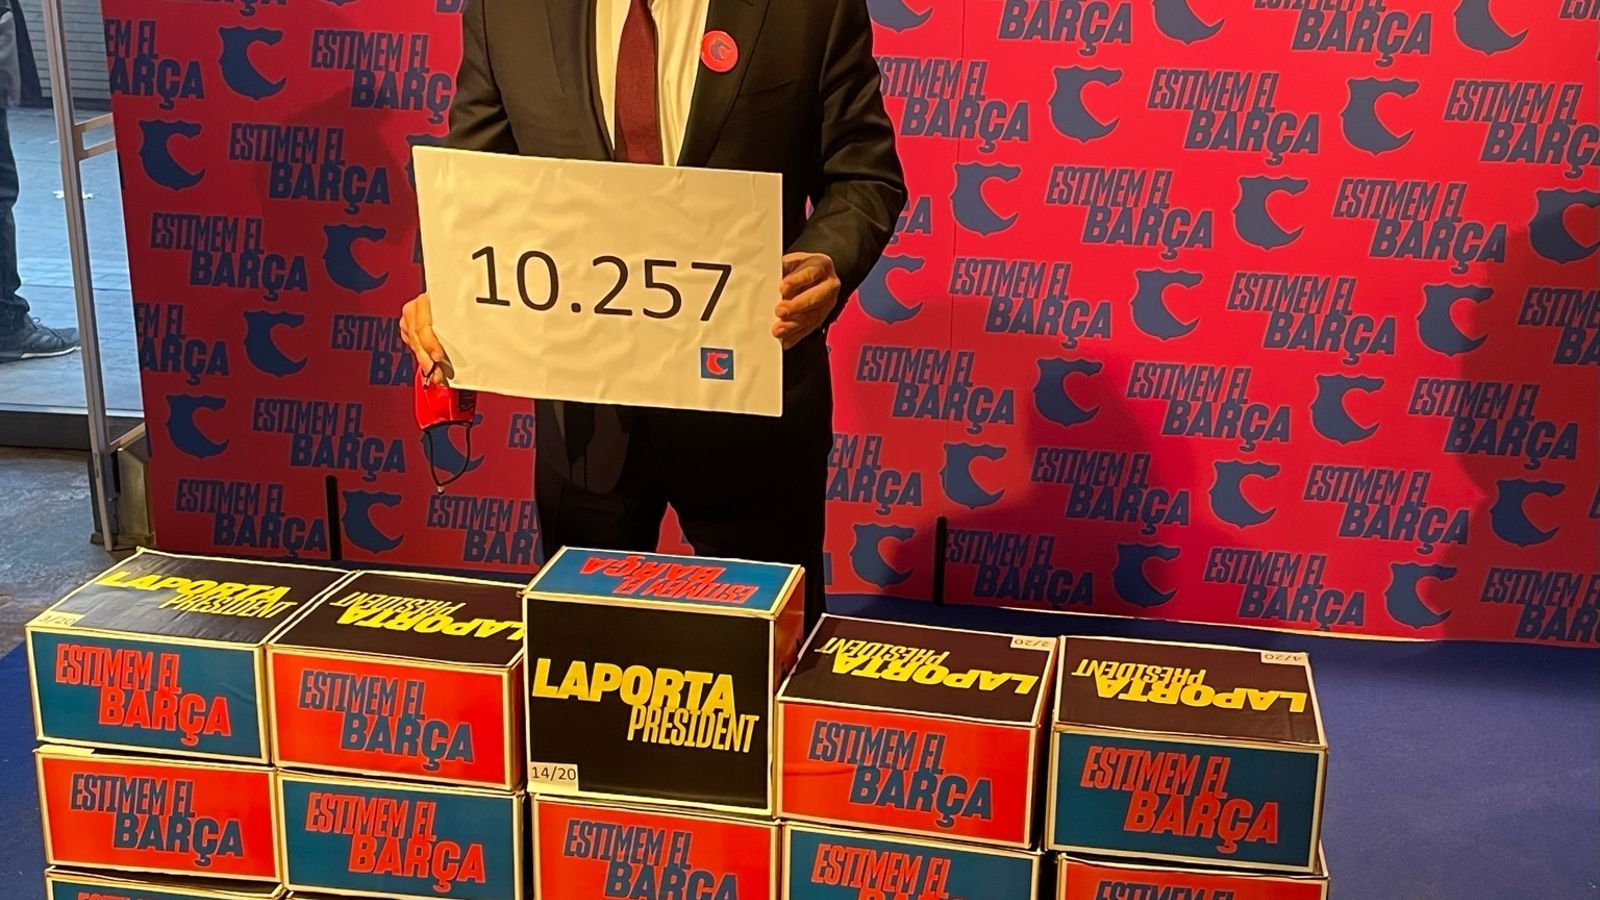 Demonstration of Laporta's strength with more than 10,000 signatures